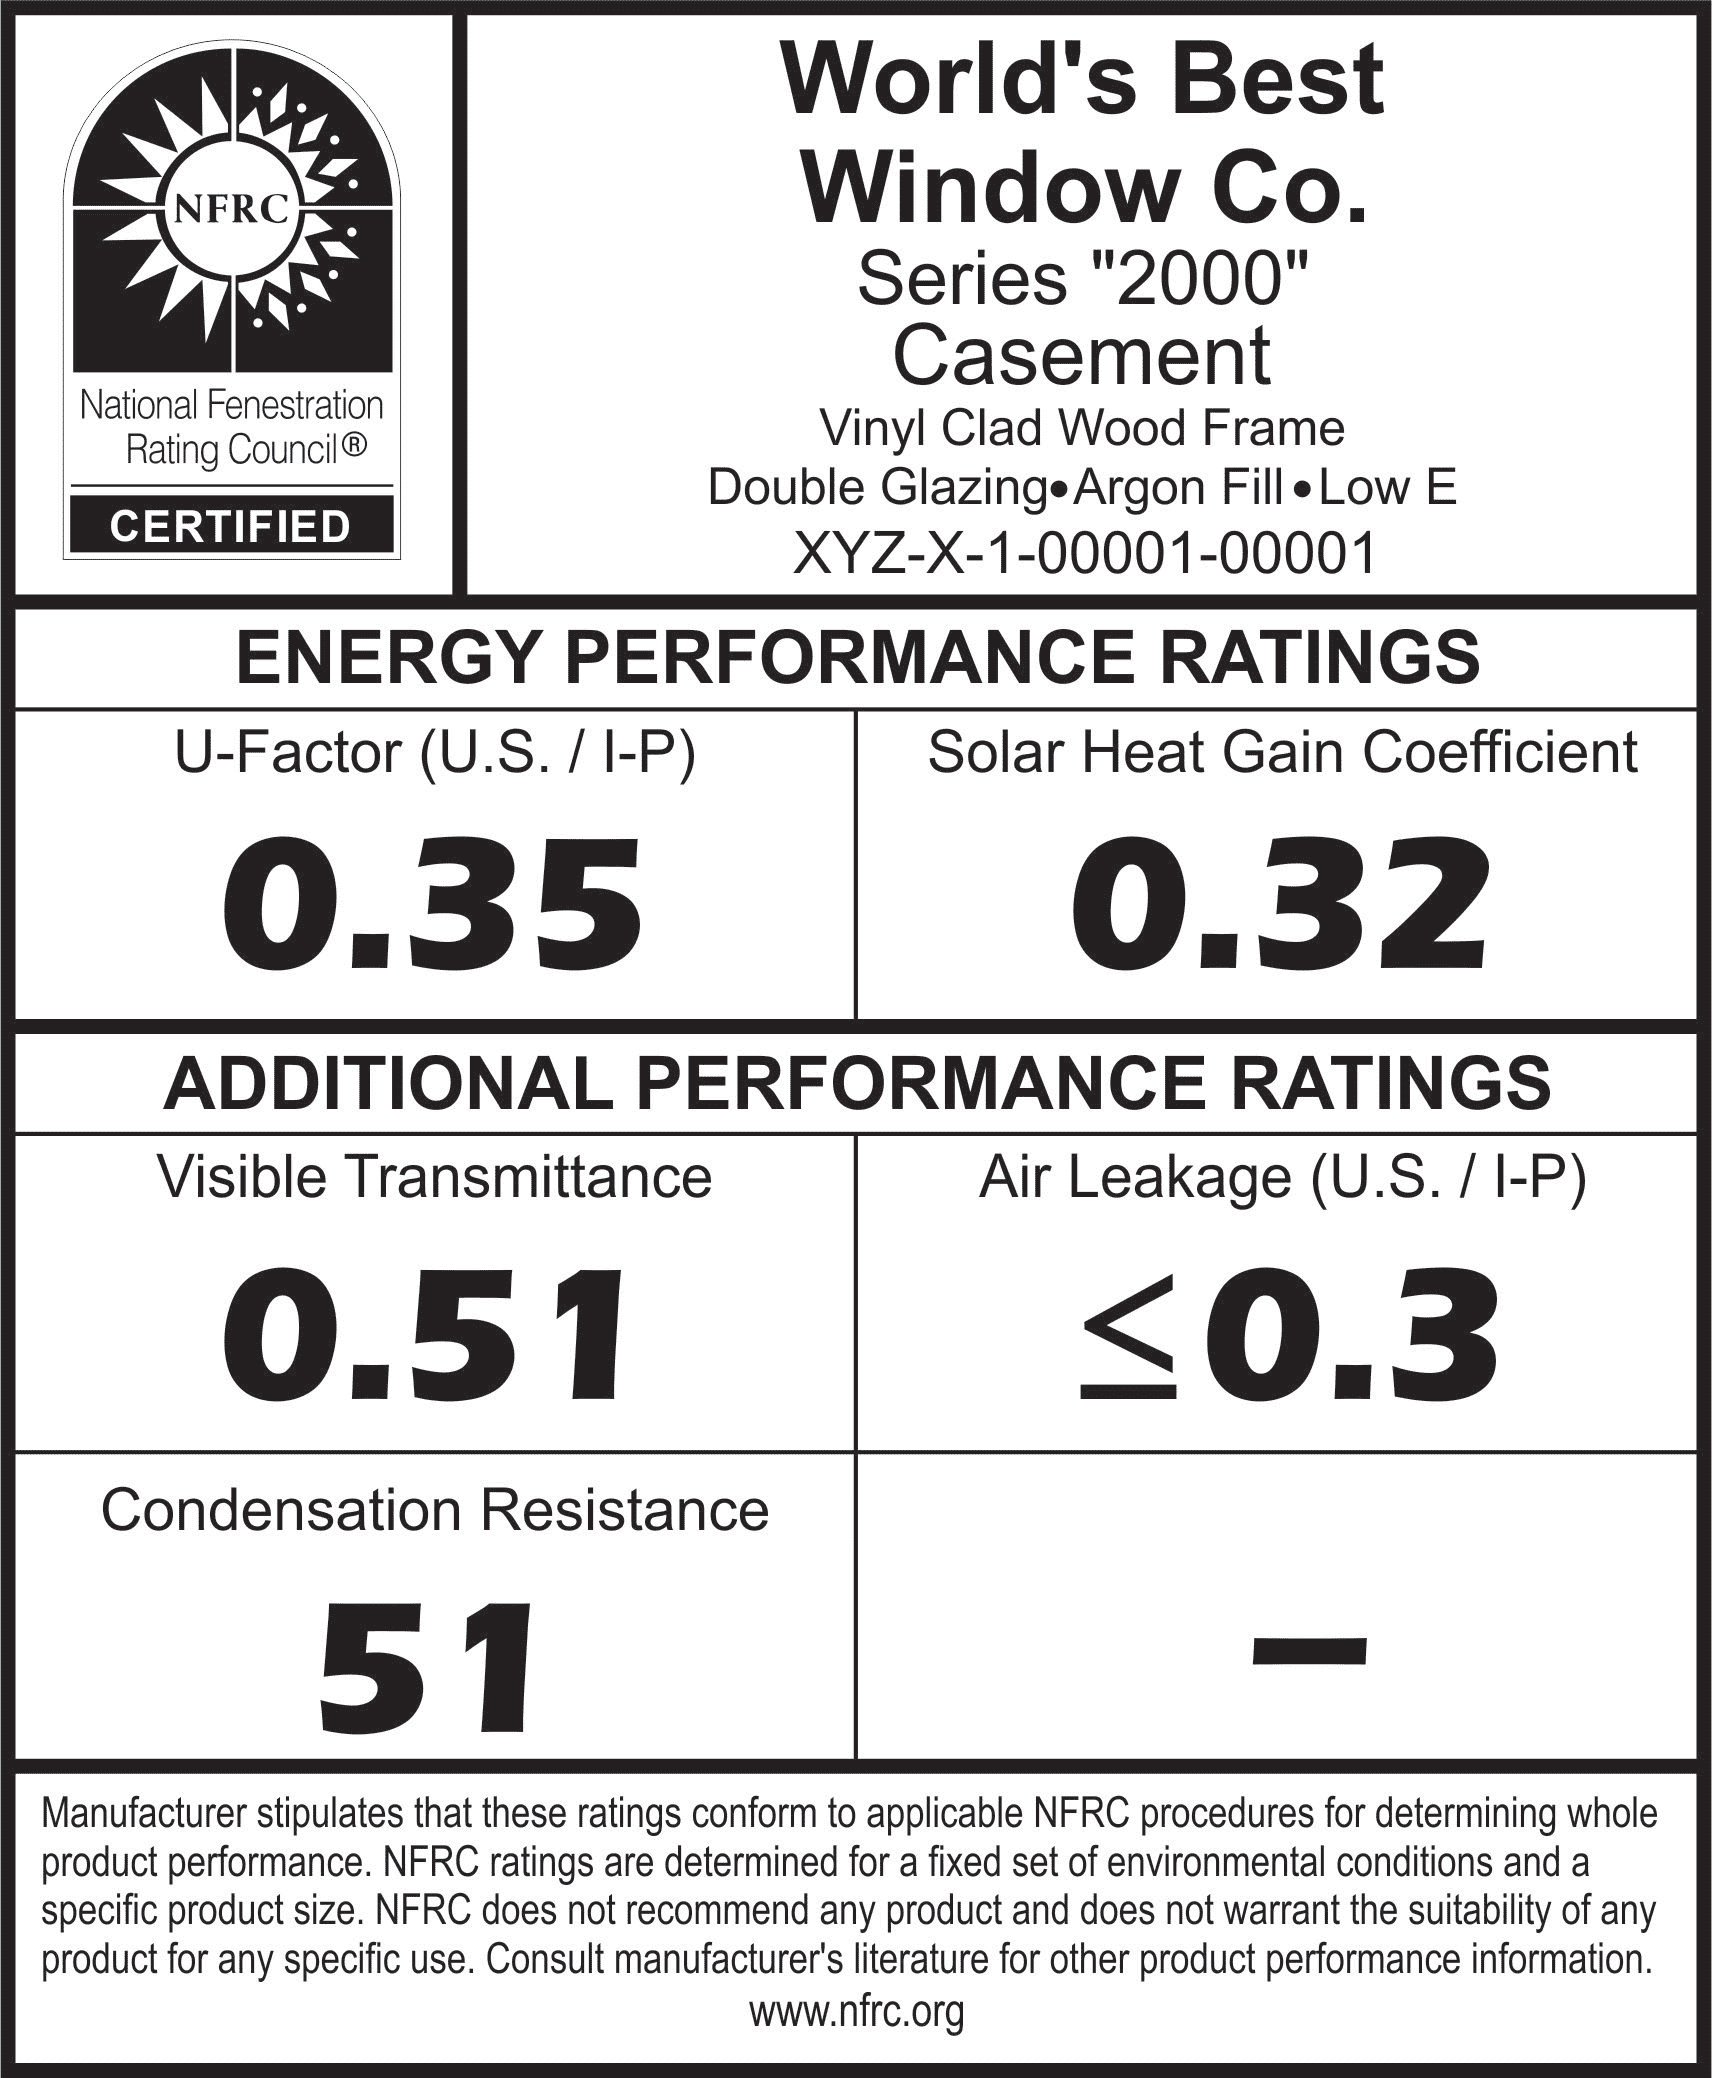 National Fenestration Rating Council | NFRC is the leader in energy